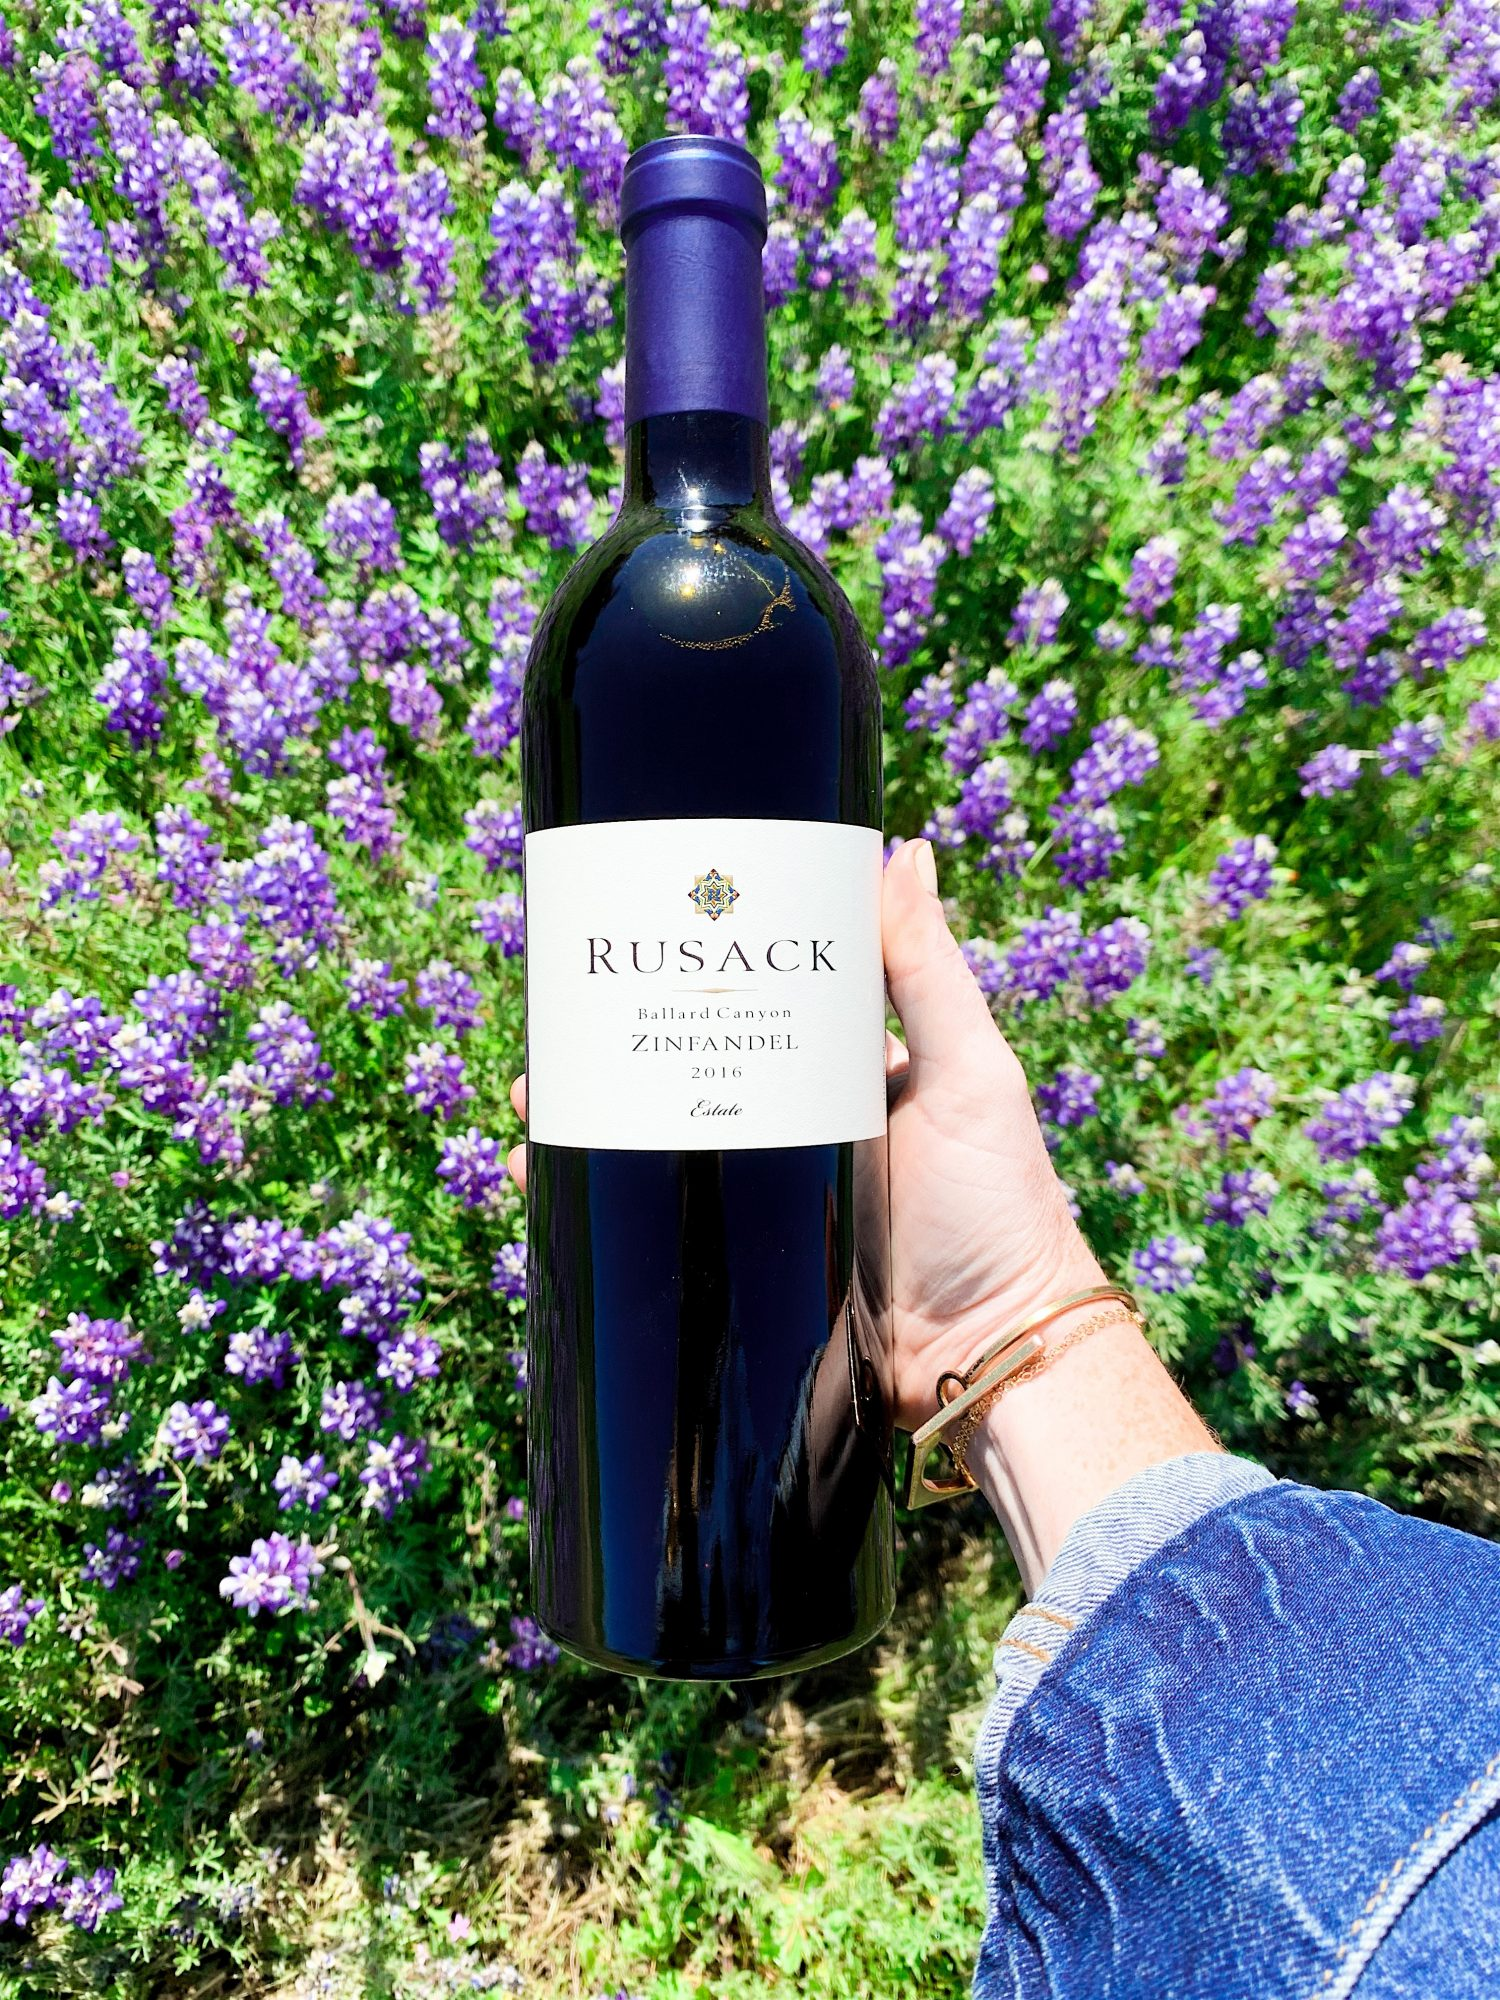 bottle of red zinfandel being held in the vineyard with wild flowers in background